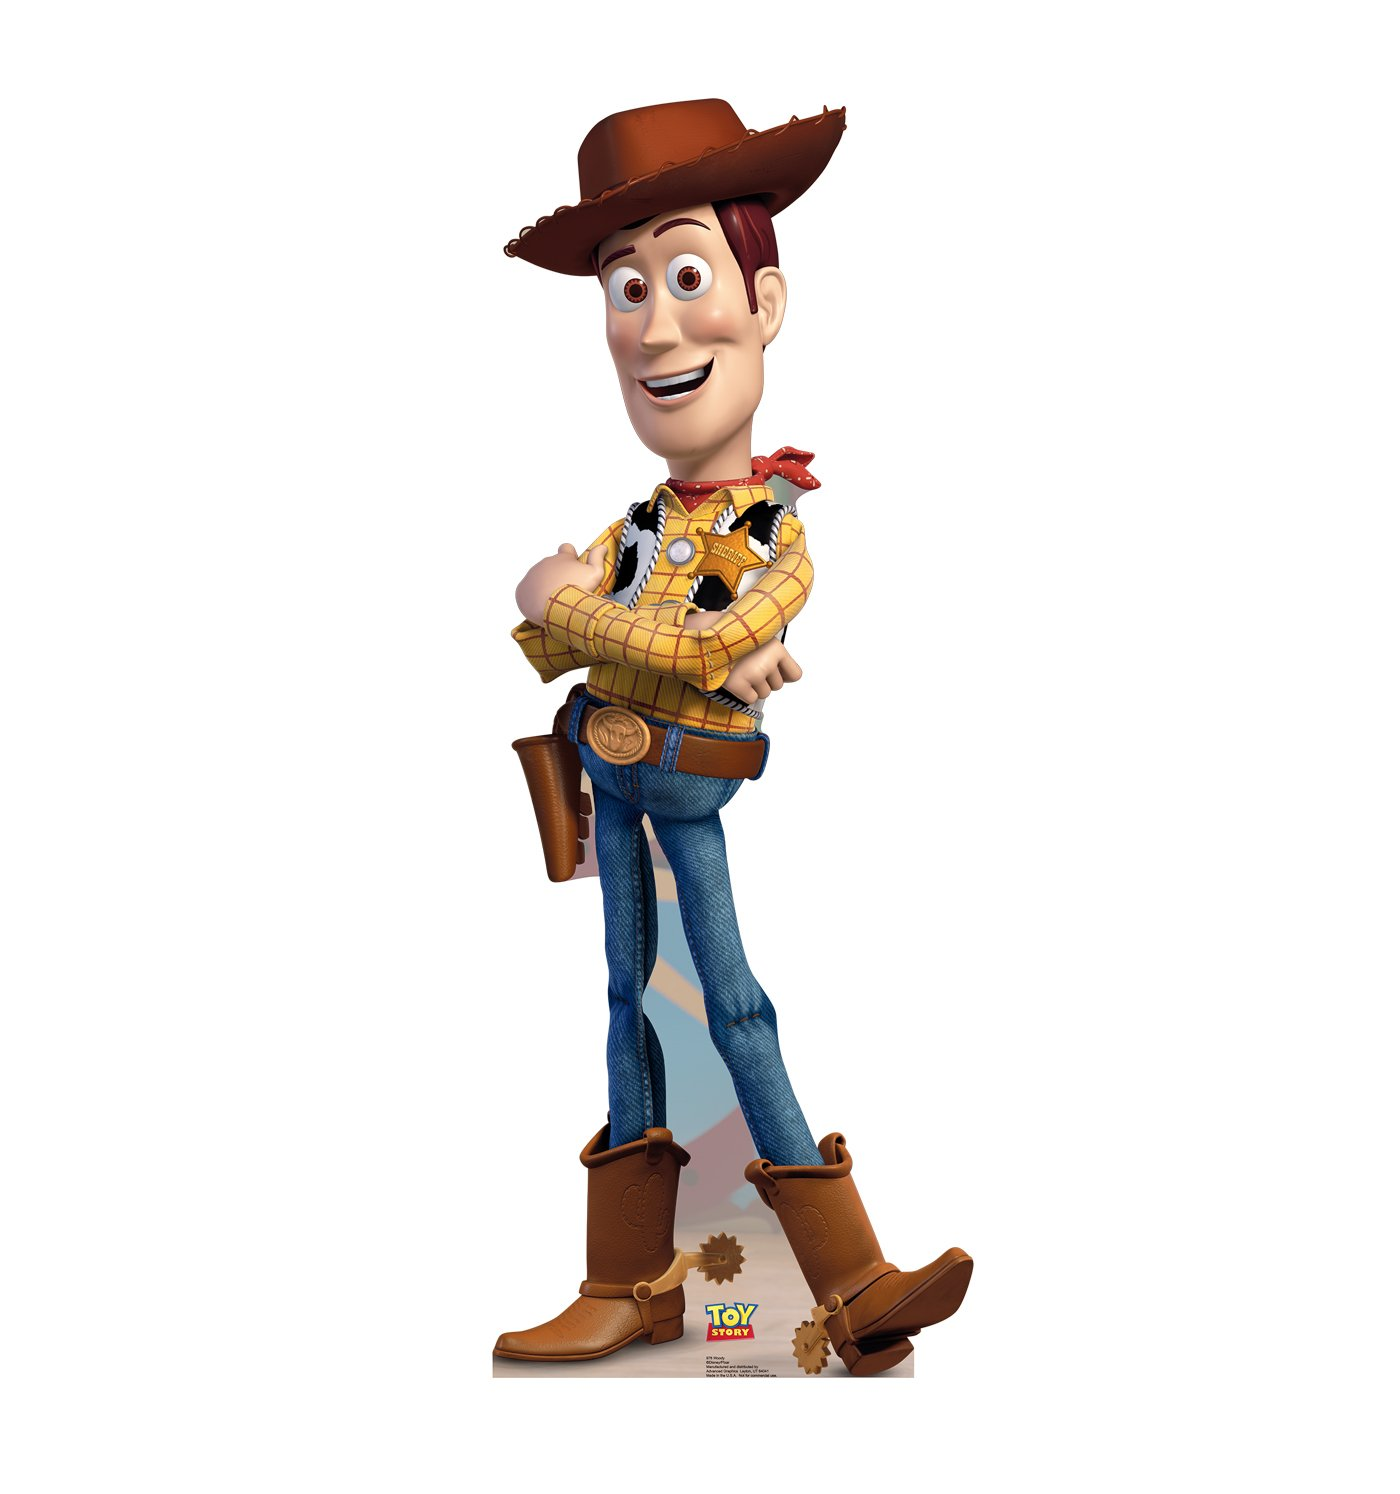 Advanced Graphics Rex Life Size Cardboard Cutout Standup - Disney Pixar's Toy Story 1250